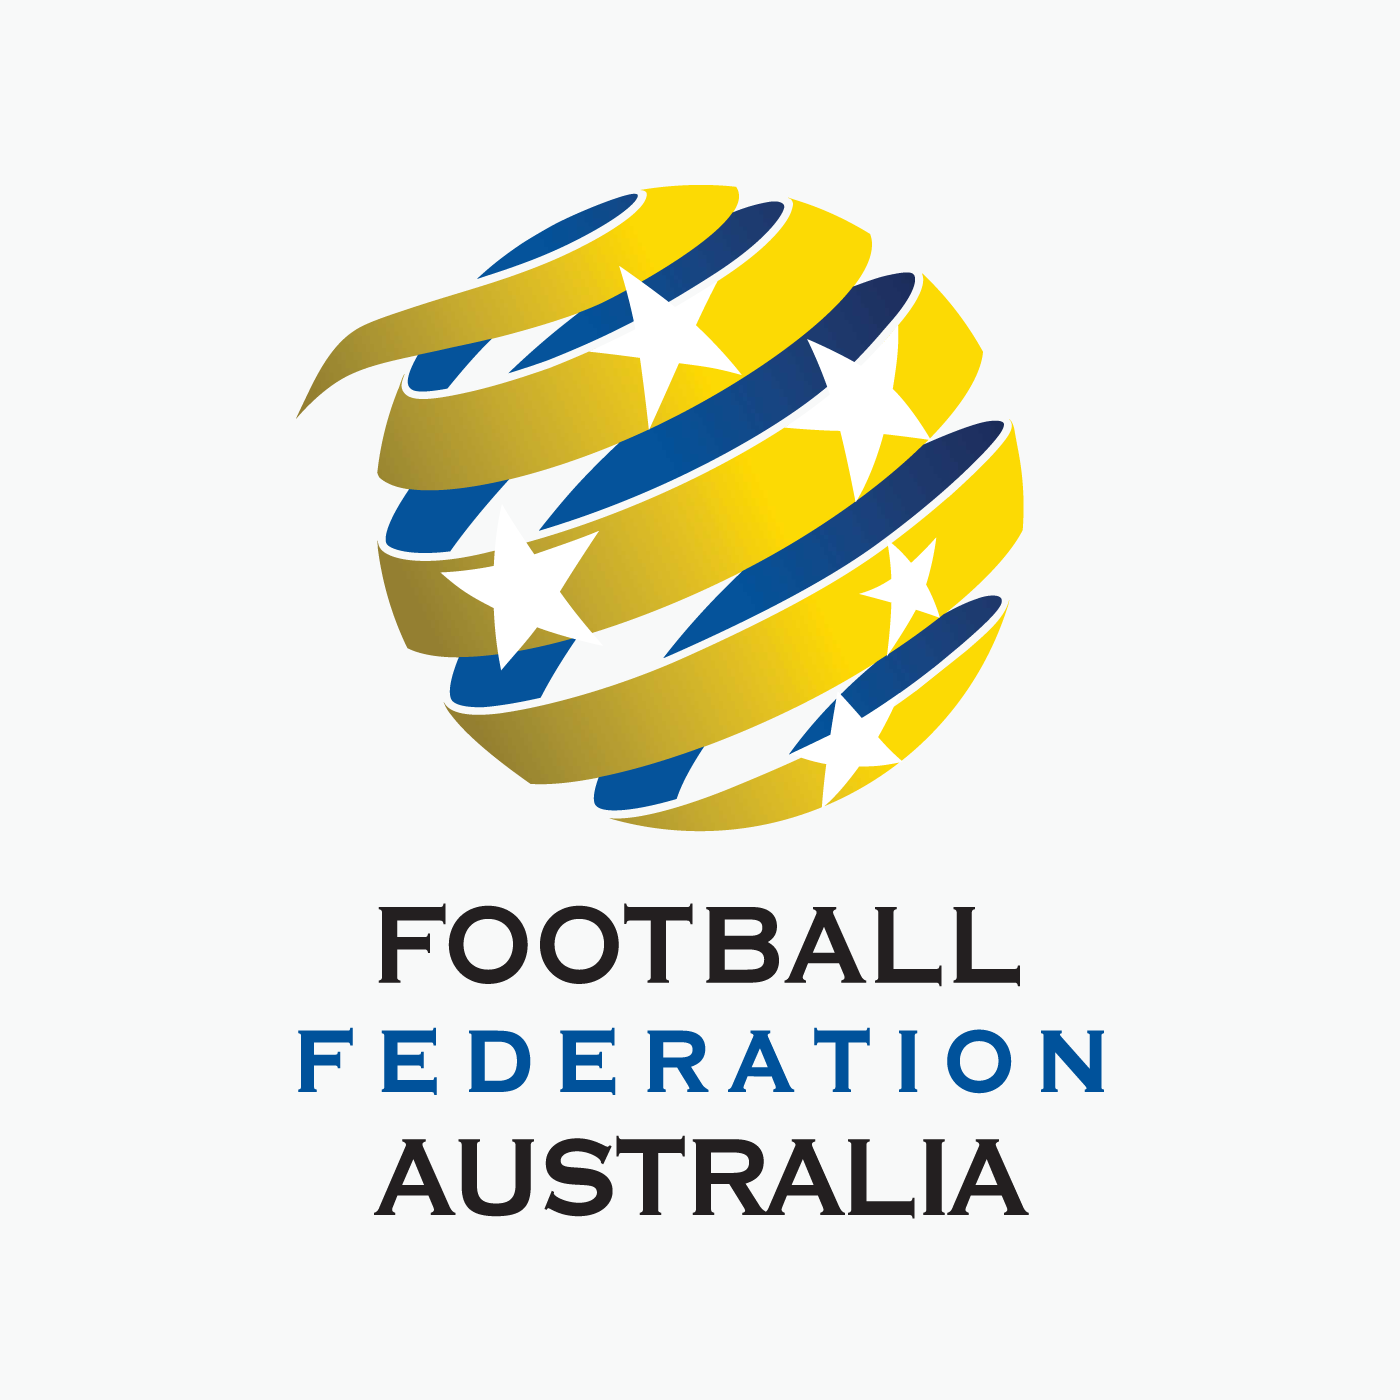 Old Football Federation Australia logo